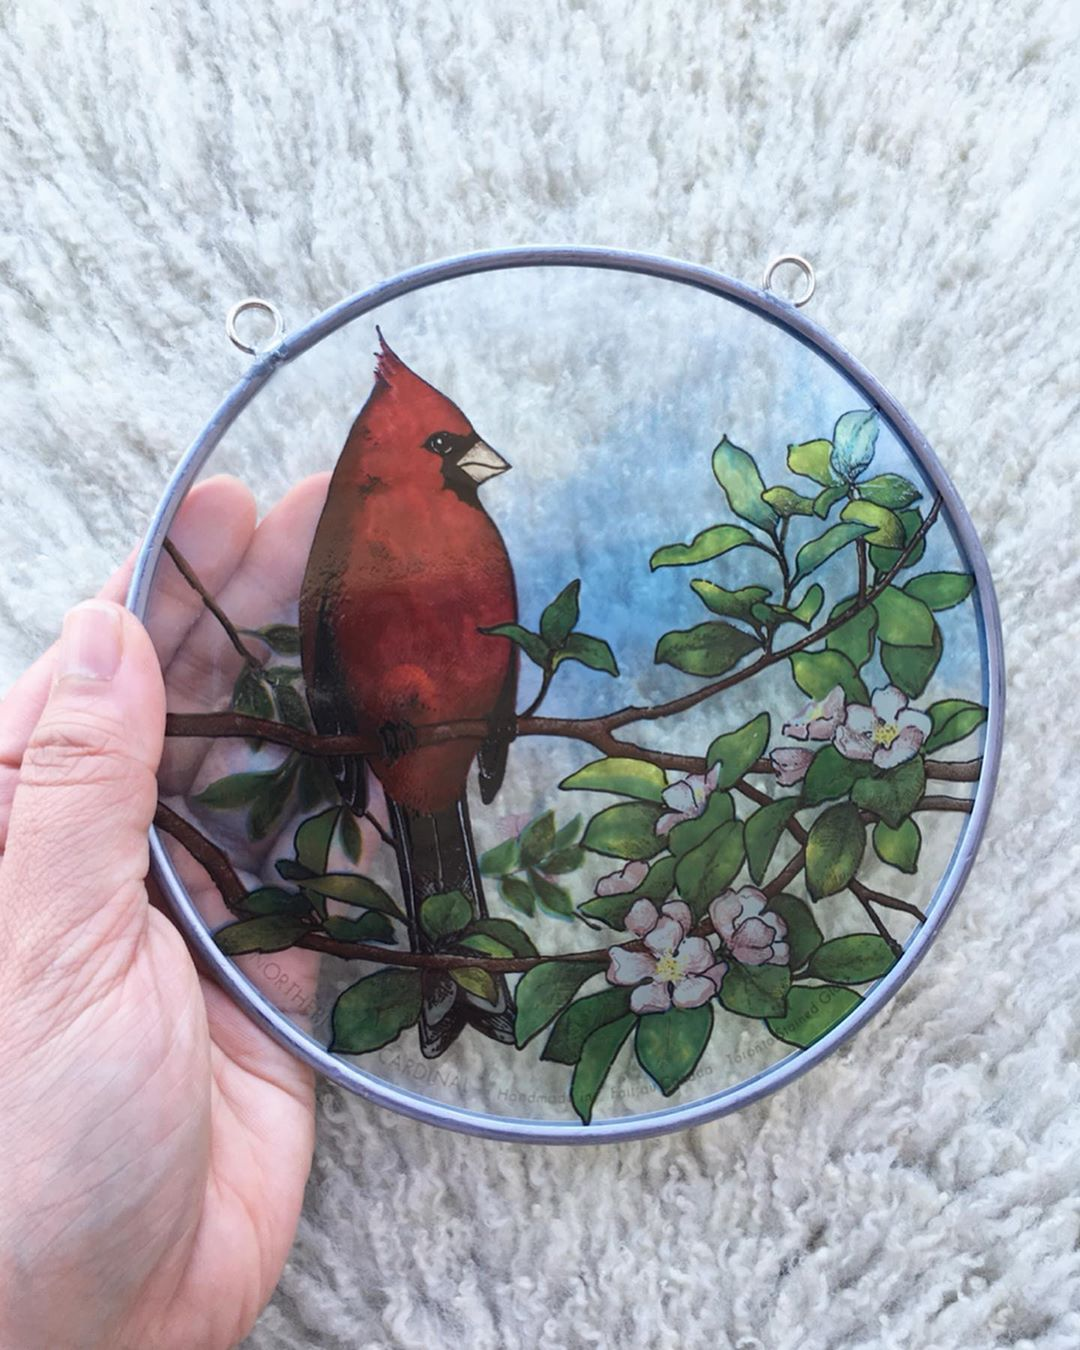 B I R D  L O V E R S   How sweet is this handmade red cardinal stained glass?! Its just needing a chain or rope to hang, otherwise its in super shape.  $28CAD (21US) + sh  DM to purchase. Ironwood quail and teak roadrunner already listed in our Etsy shop and  part of our anniversary sale! onibauavailable